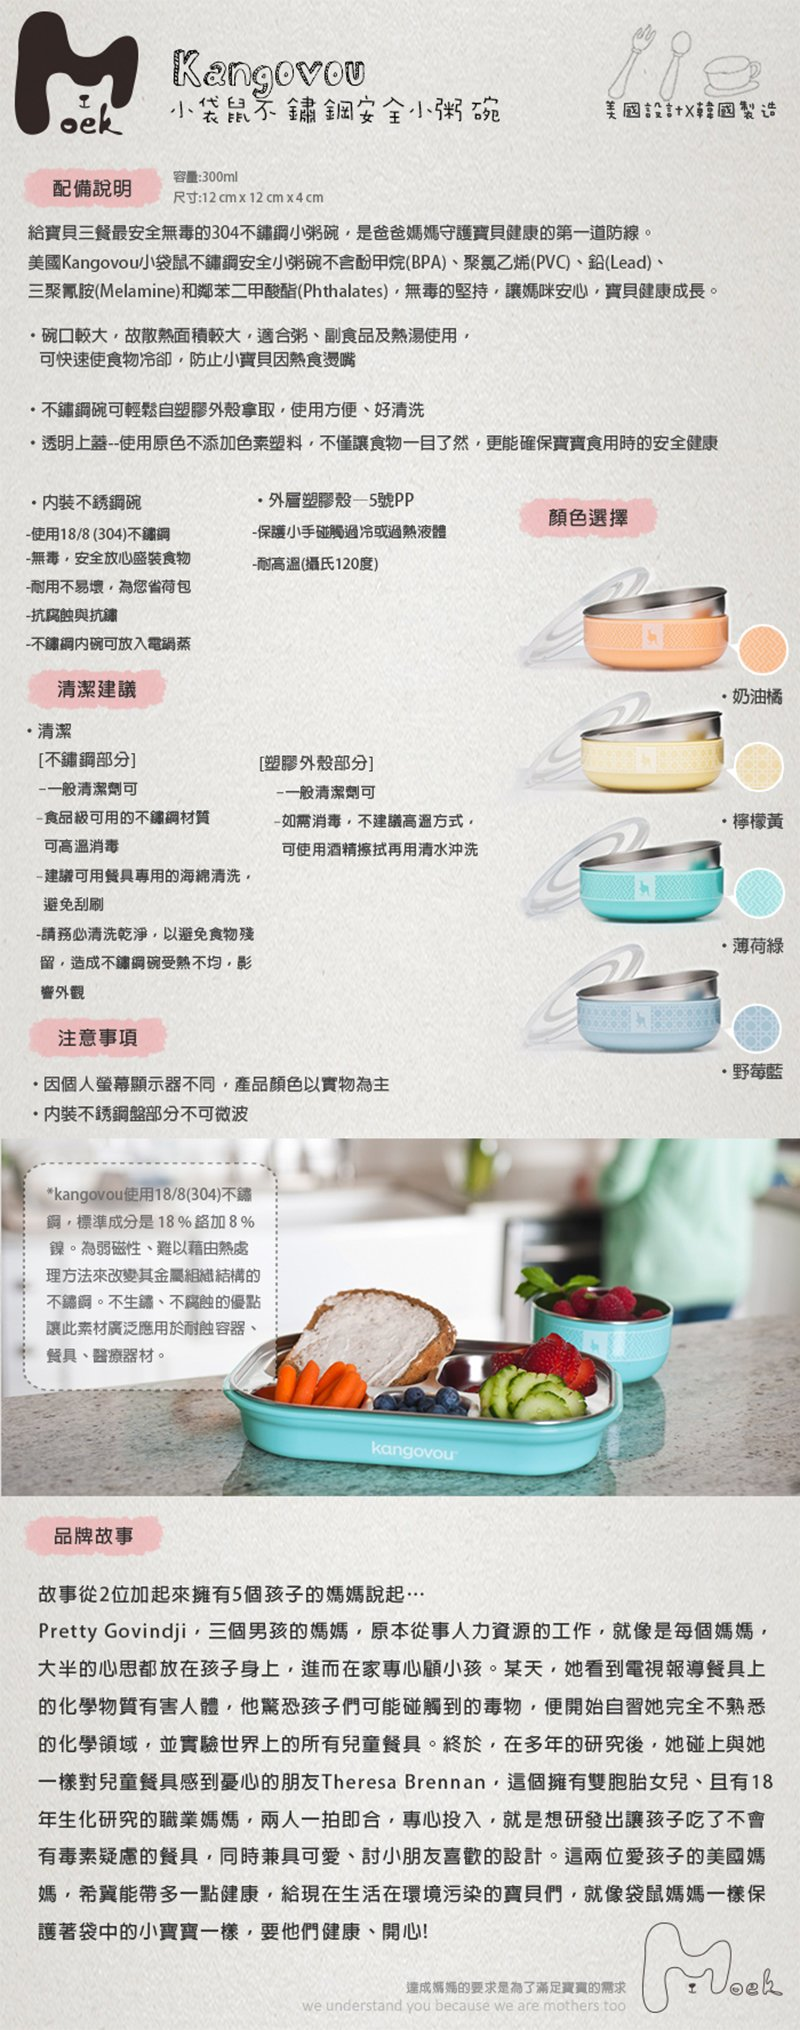 stainless steel food and cereal bowl 儿童不锈钢点心碗